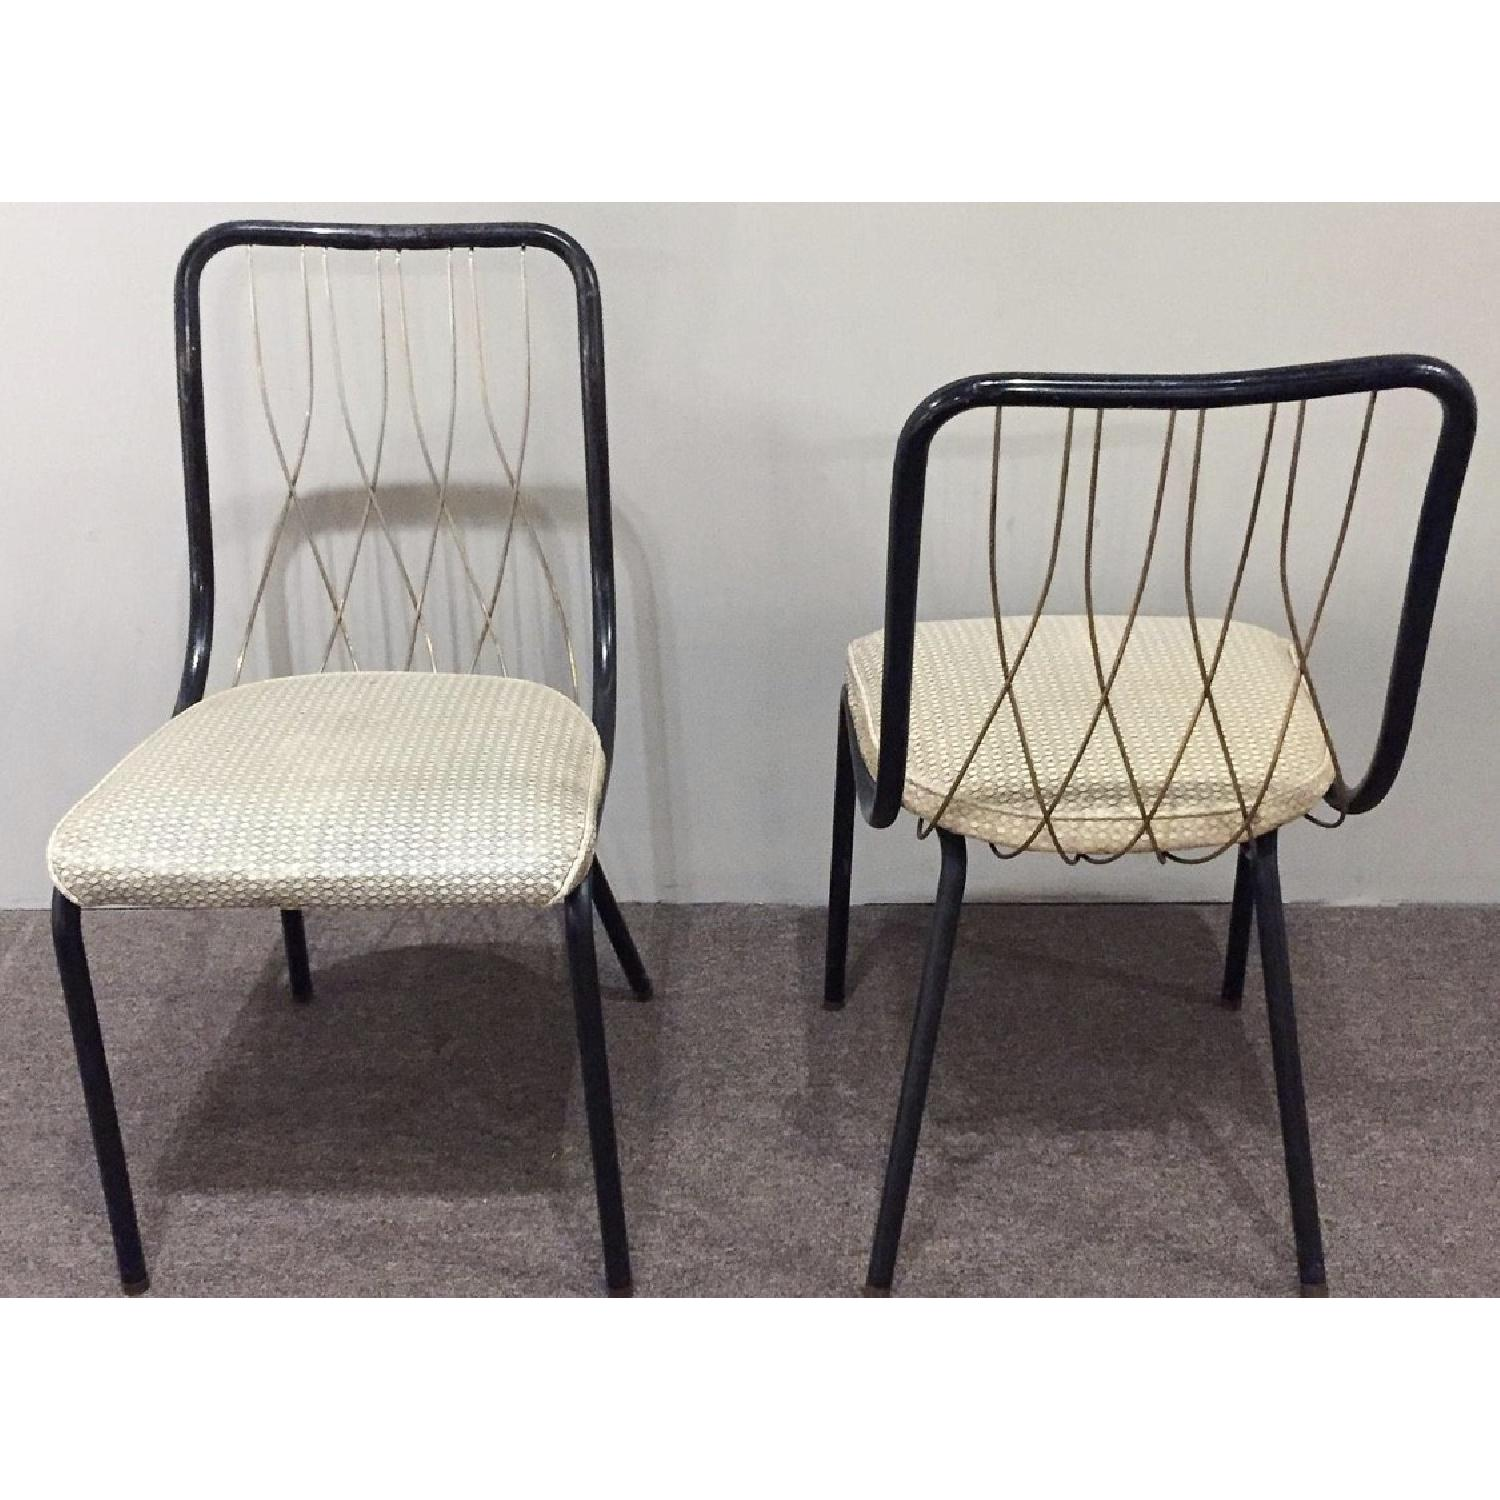 Vintage French Art Deco Brass & Leather Chairs - image-3